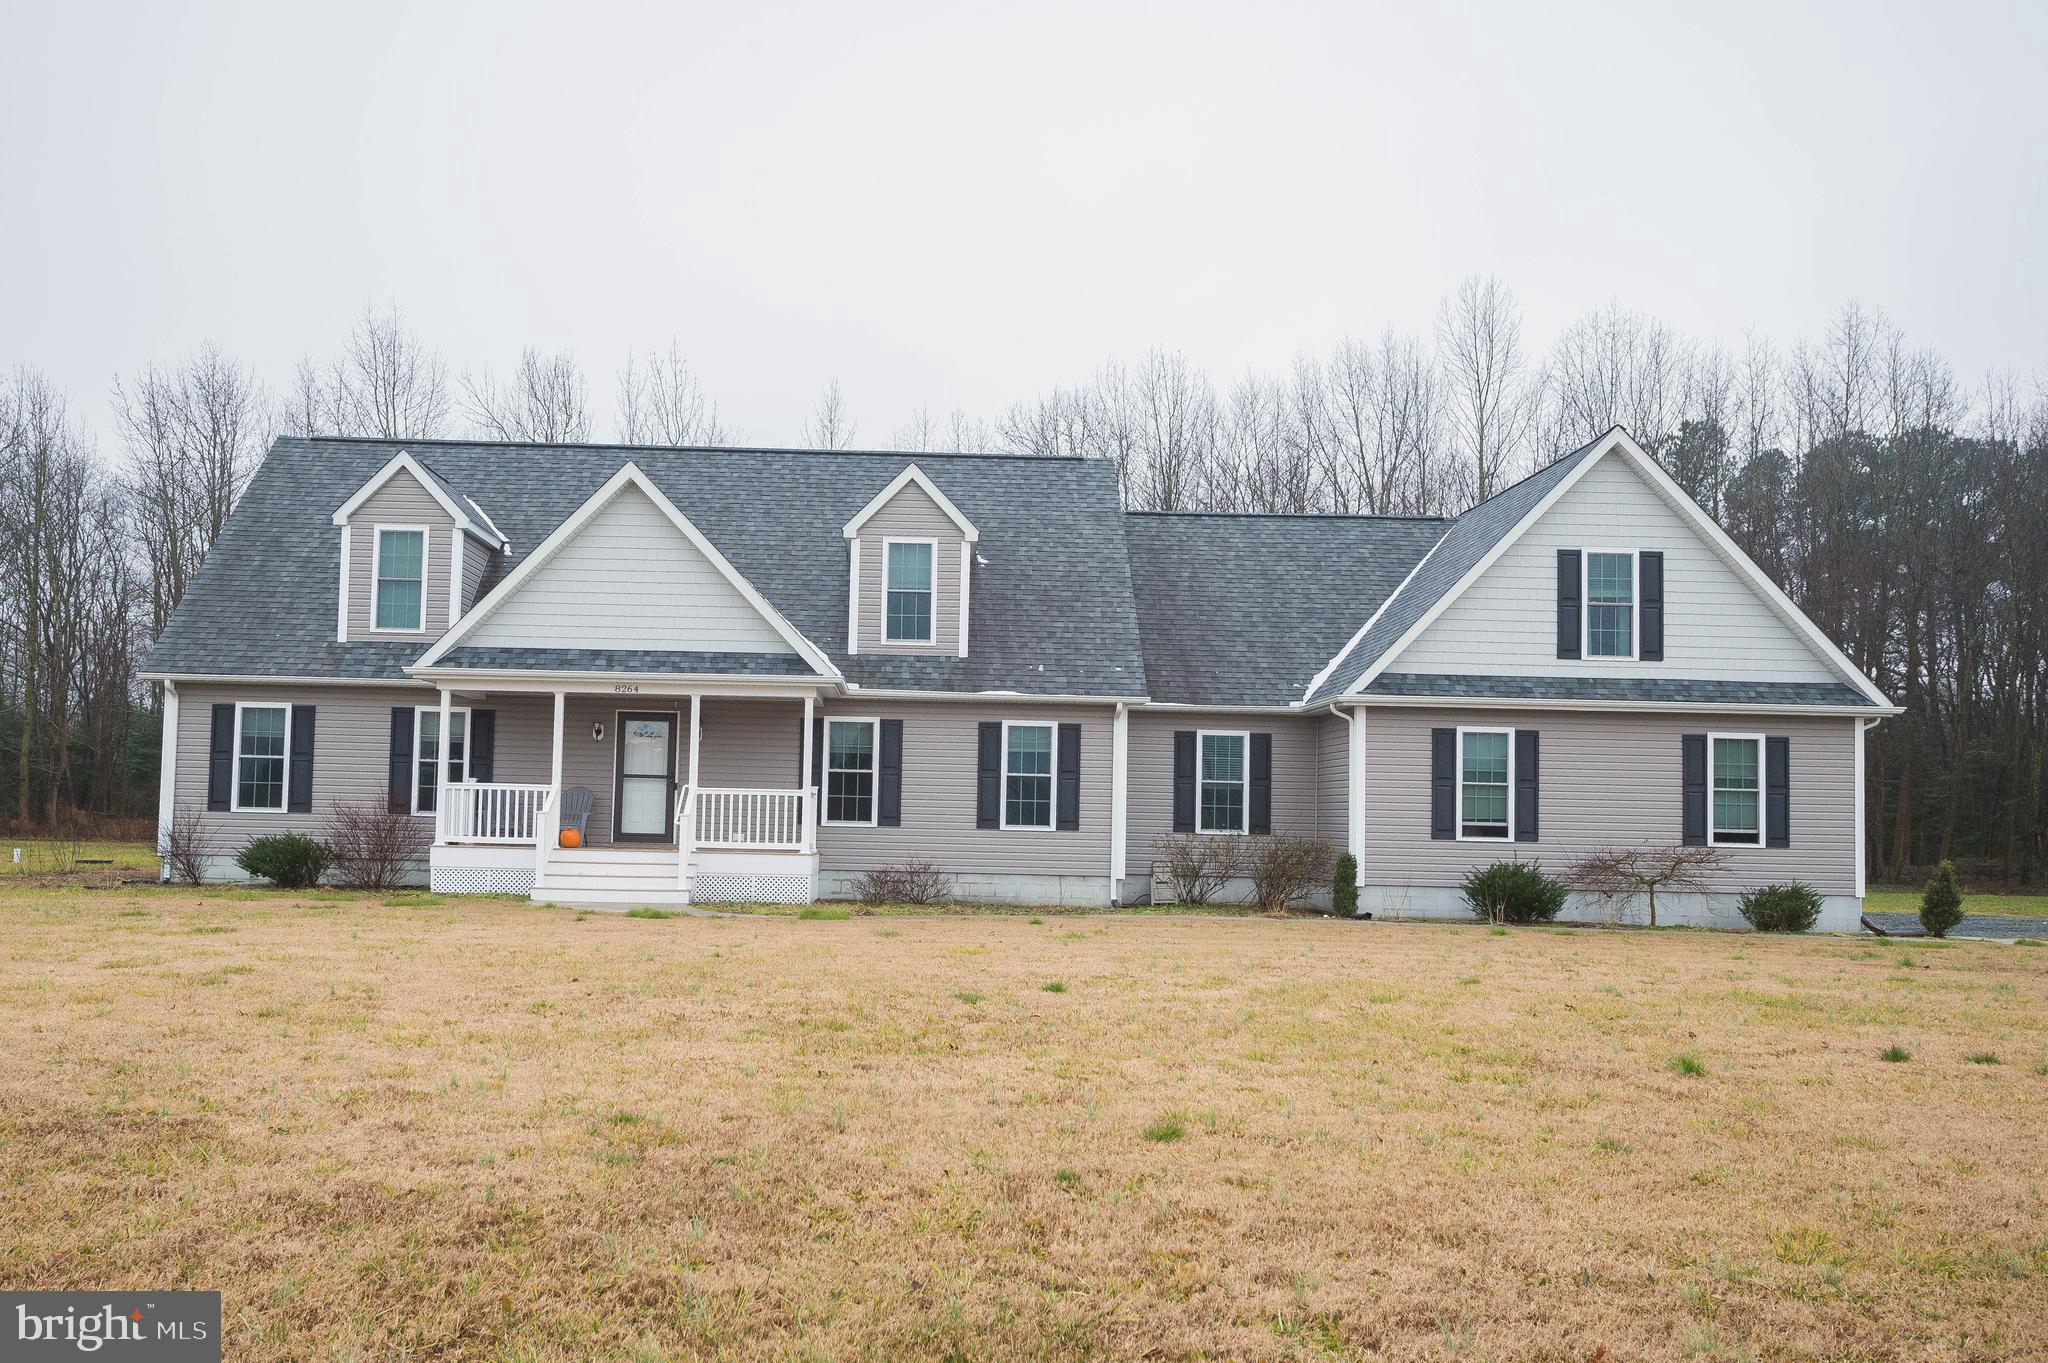 Location, Location, Location! One of the most ideal spots in lower Sussex County without HOA fees or city taxes. Conveniently located to Town amenities, 10 minutes to Wal-Mart and about 45 minutes to the resort MD & DE Beach areas. This Beautiful home sits on 3.22 acres in Delmar De, A spacious first floor master, Granite countertops,  and SS appliances. Do not miss out! Schedule your showing today!